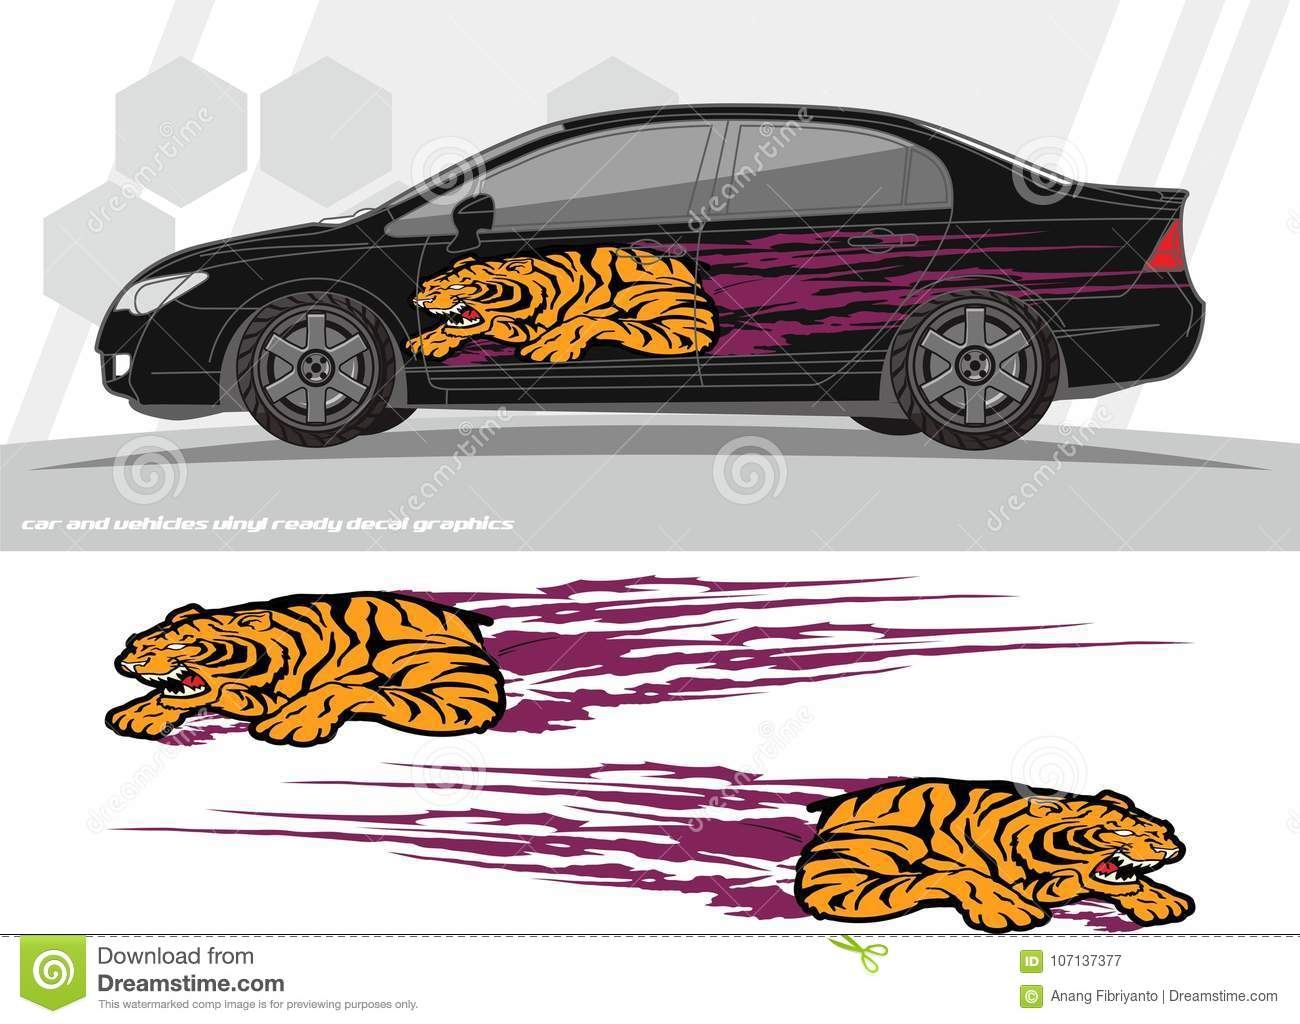 Car and vehicles decal graphics kit designs ready to print and cut for vinyl stickers